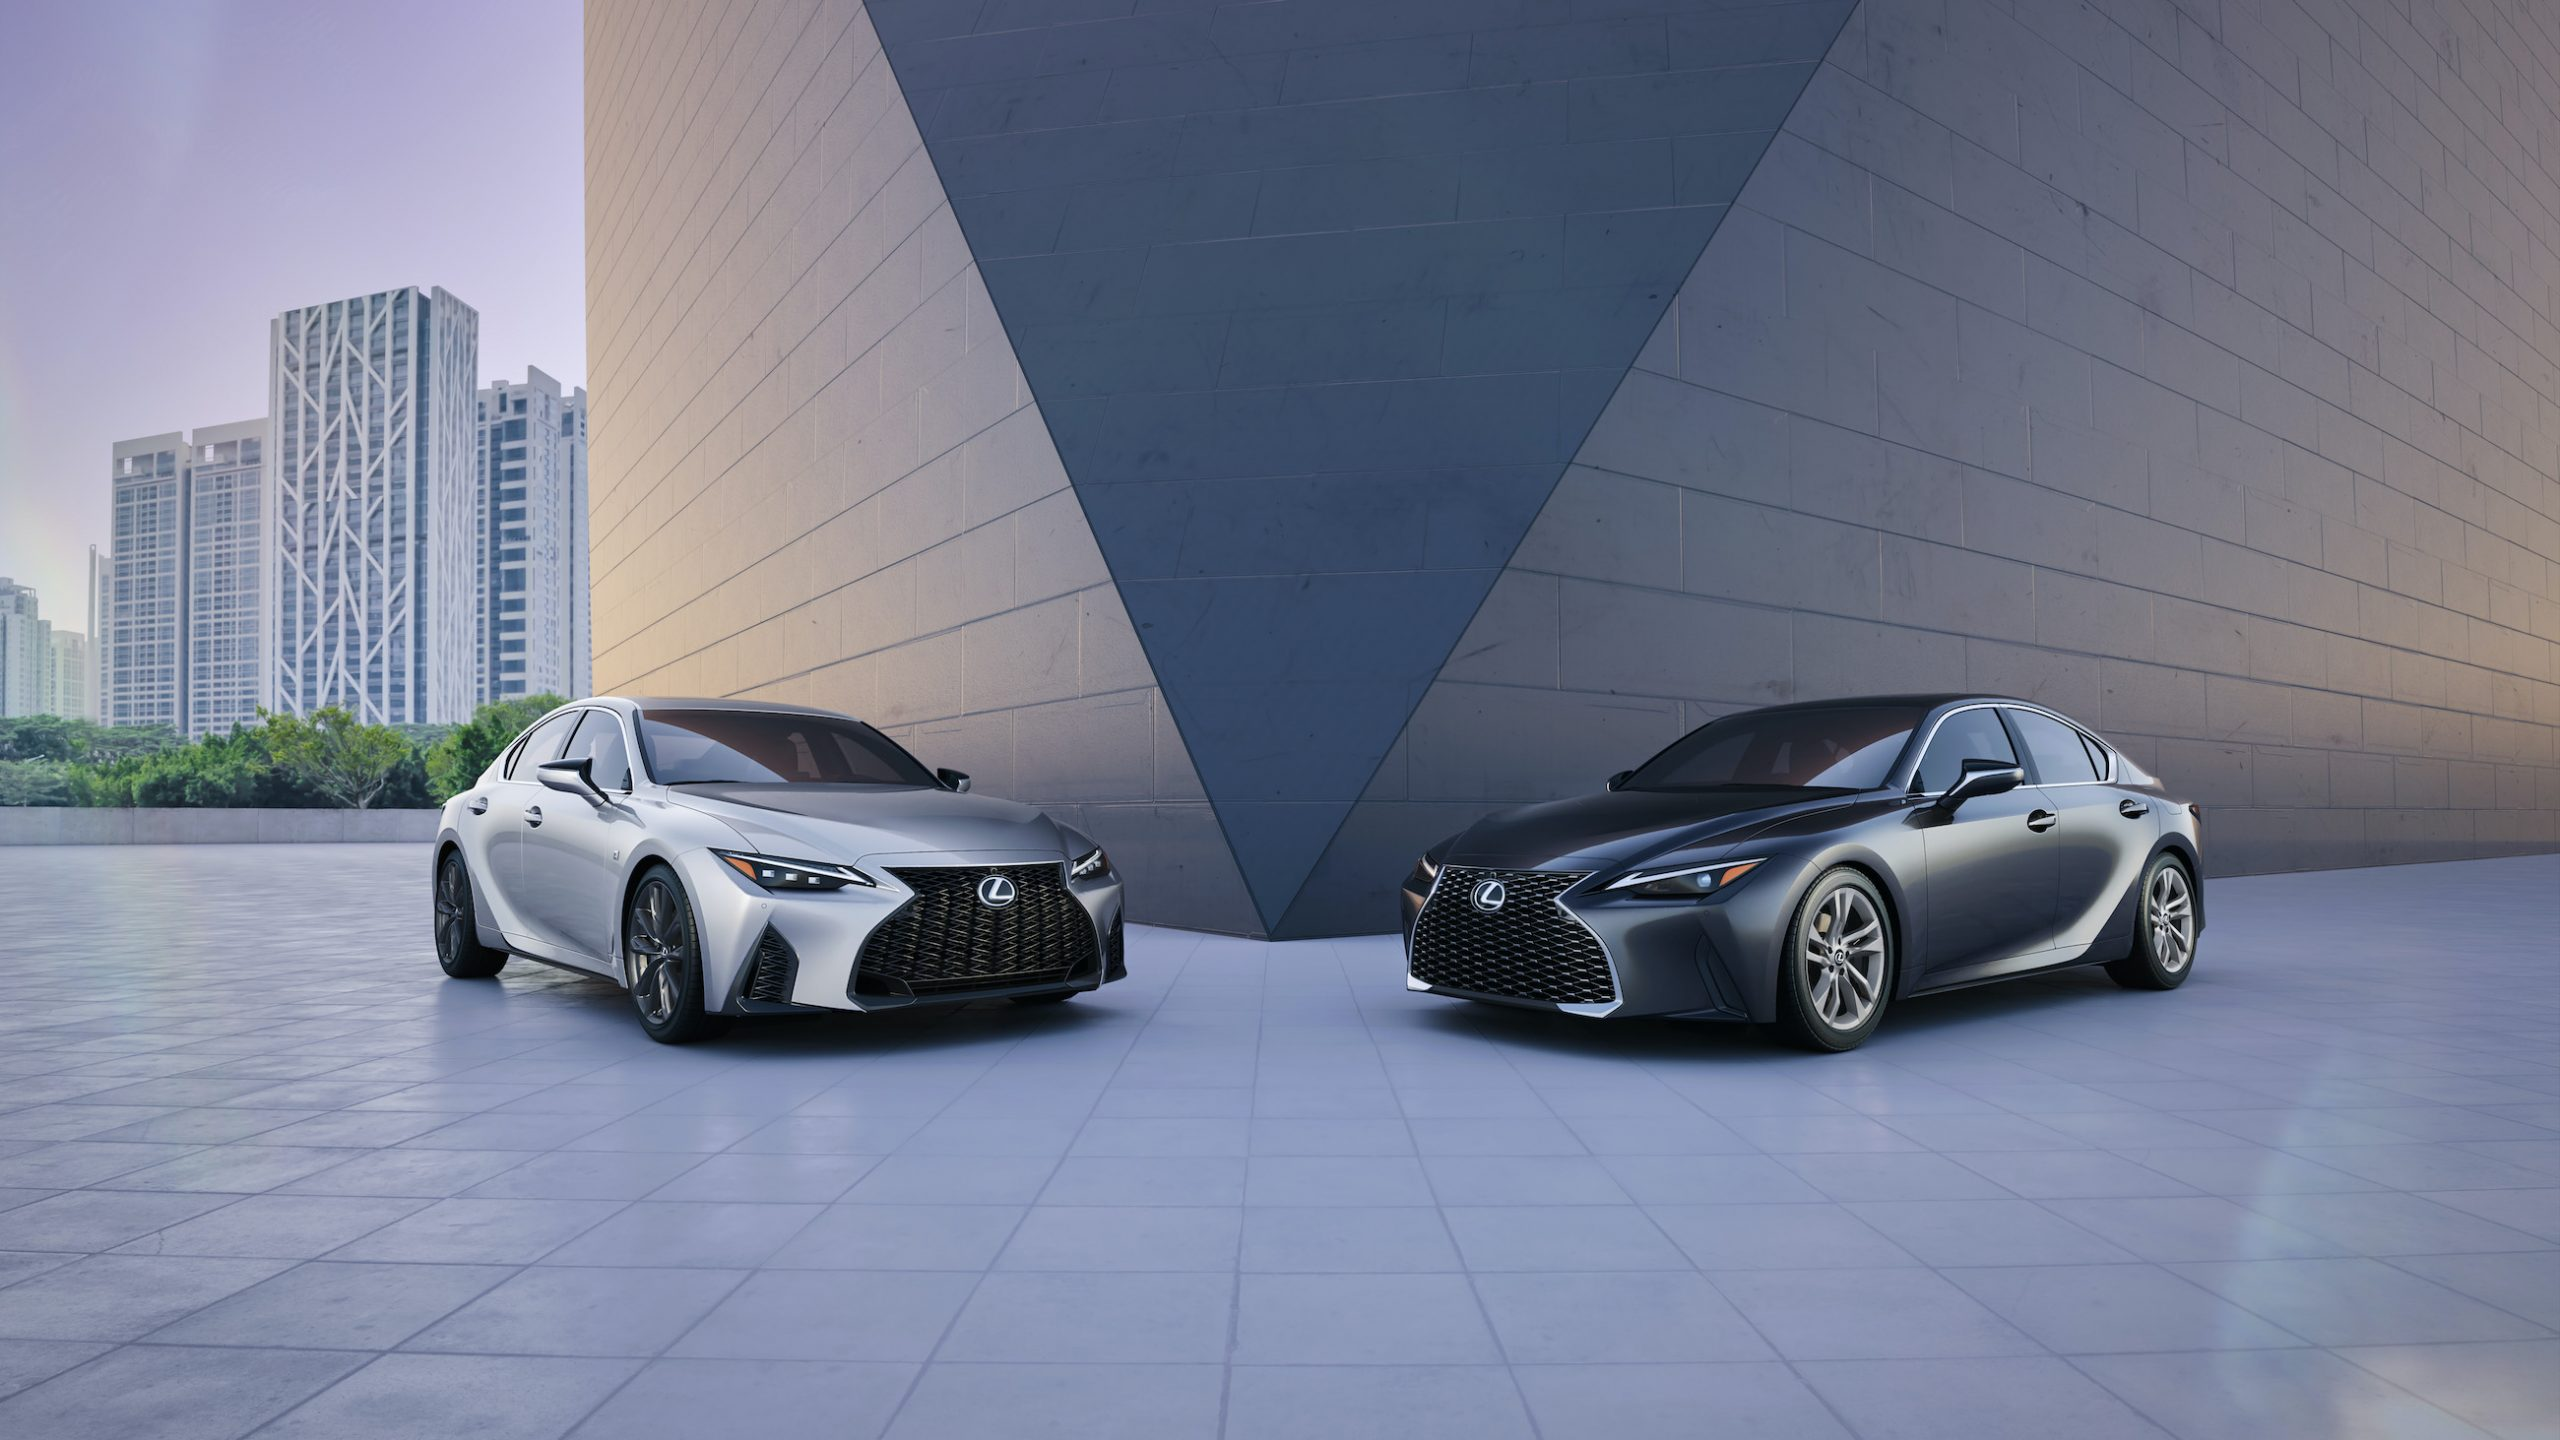 2021 Lexus IS 350 F Sport and IS 300